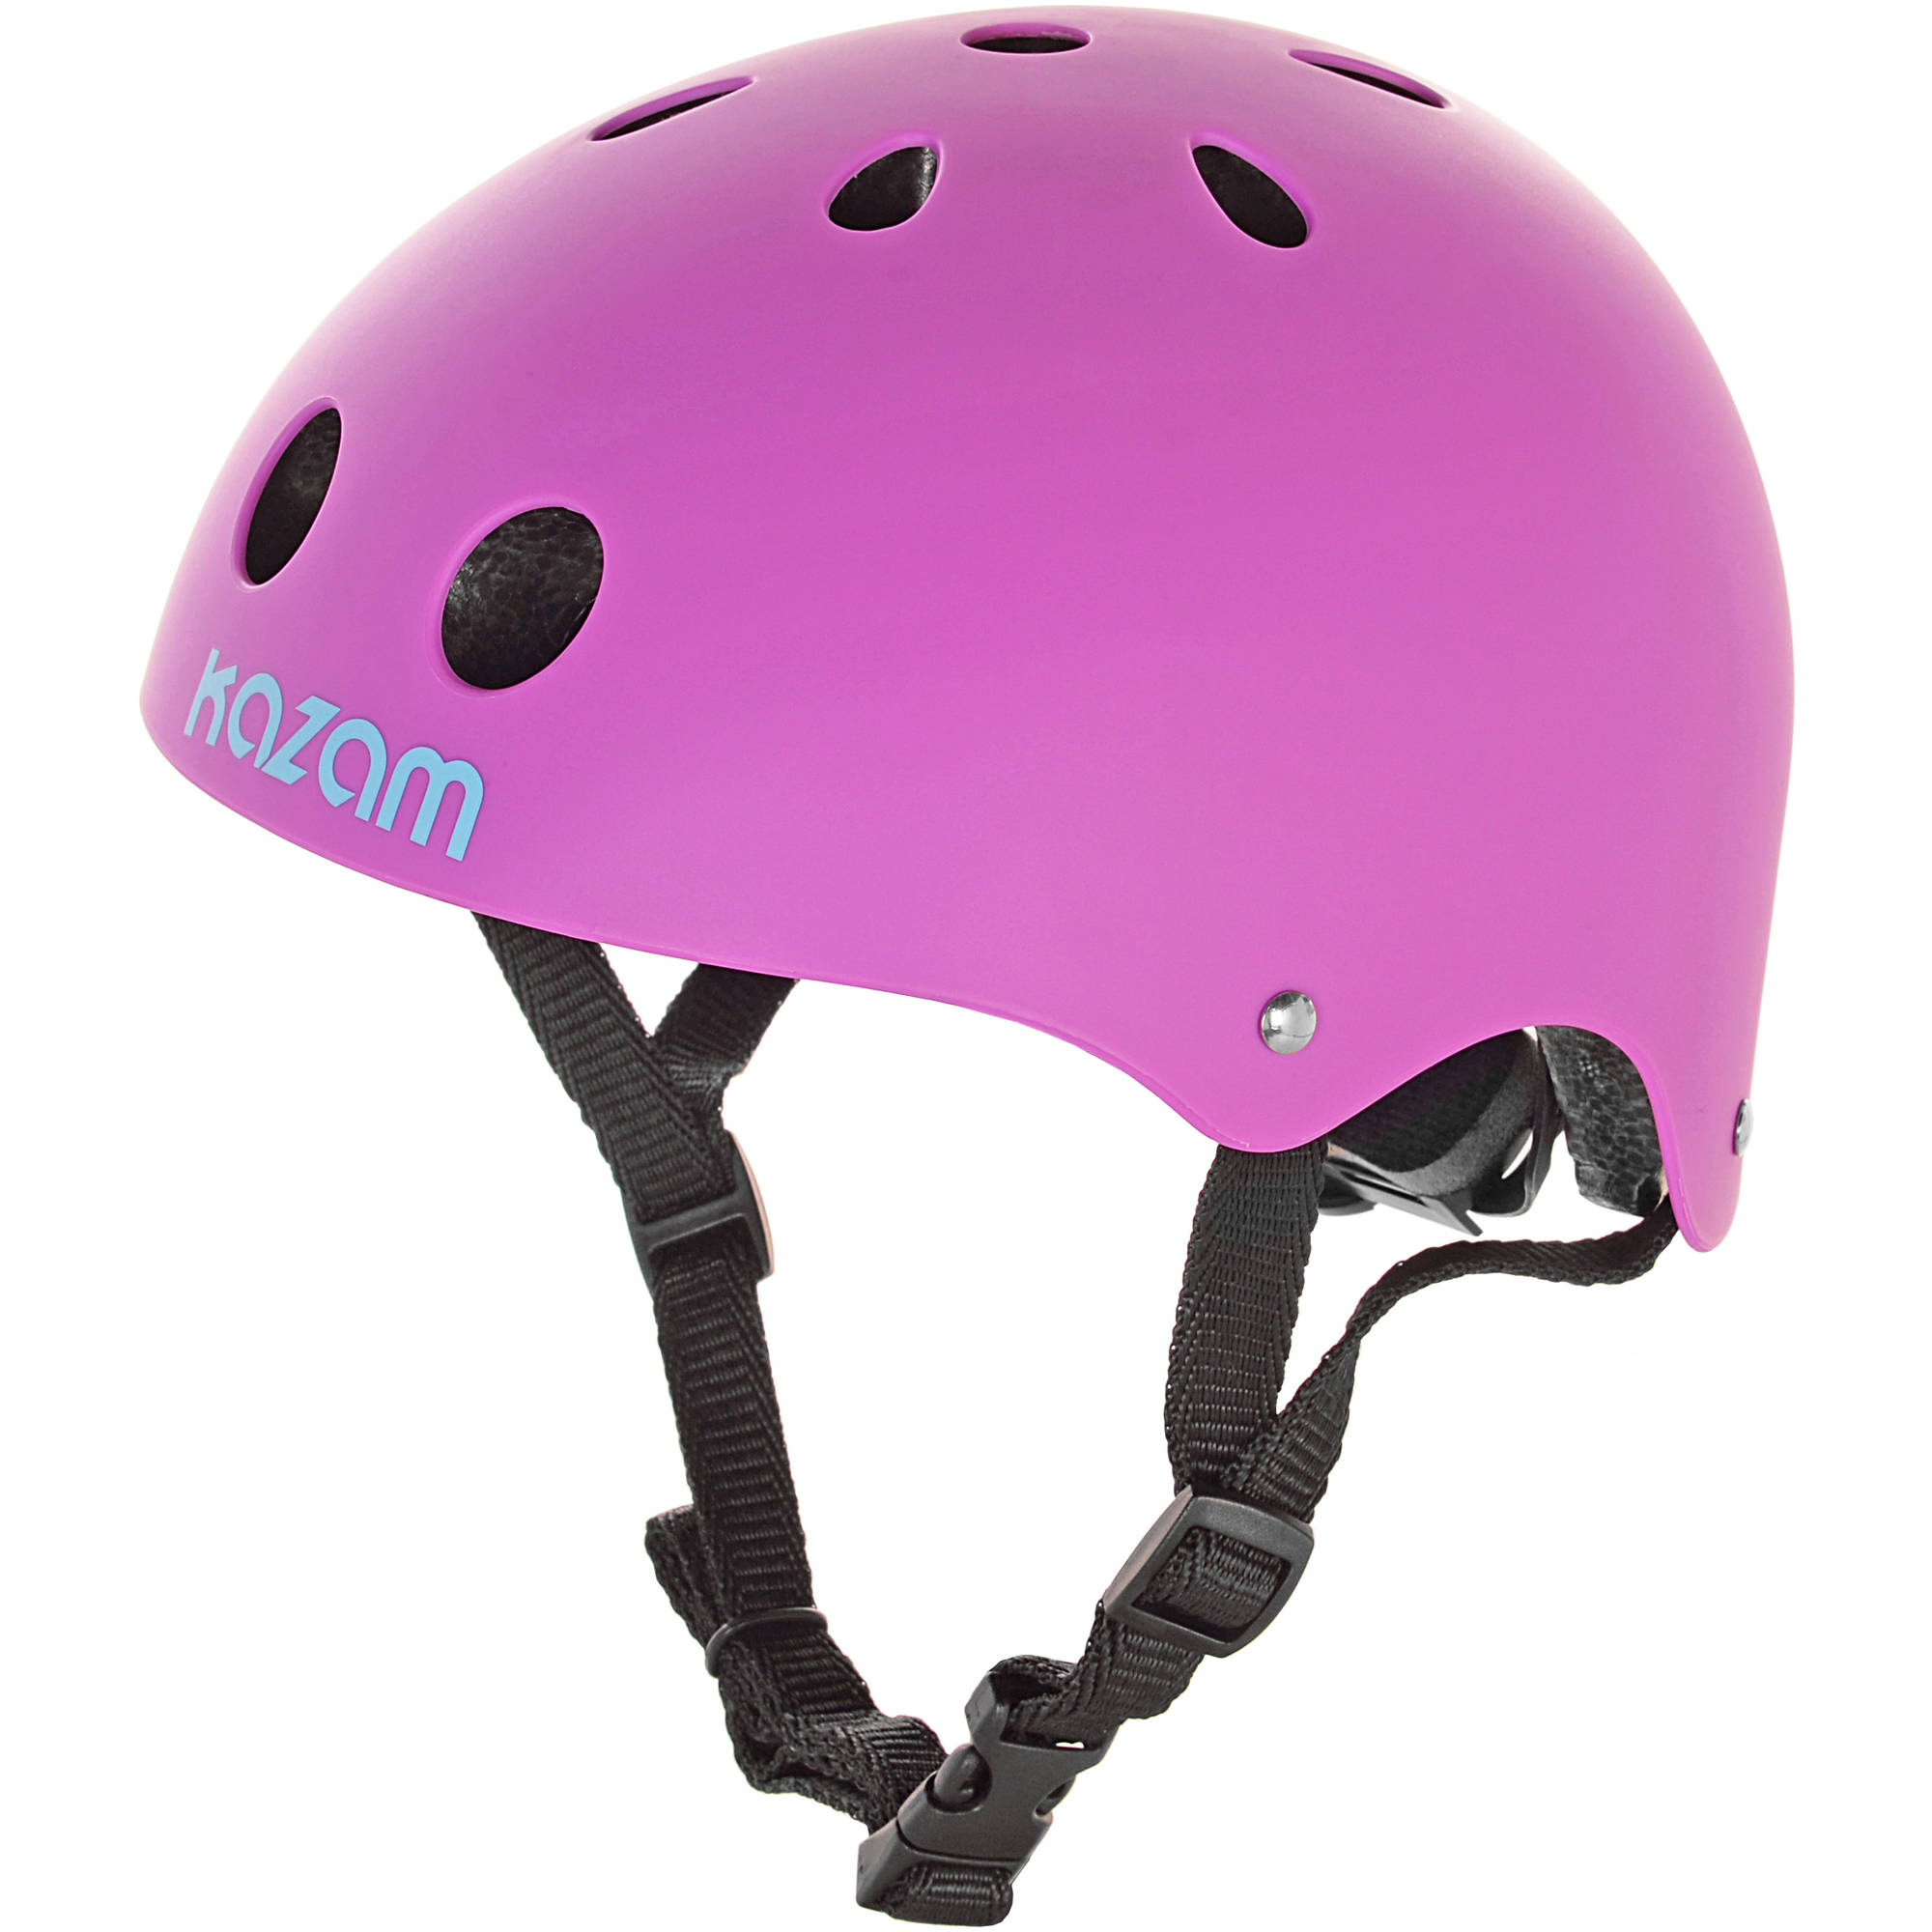 Kazam Multi-Sport Helmet, Electric Purple